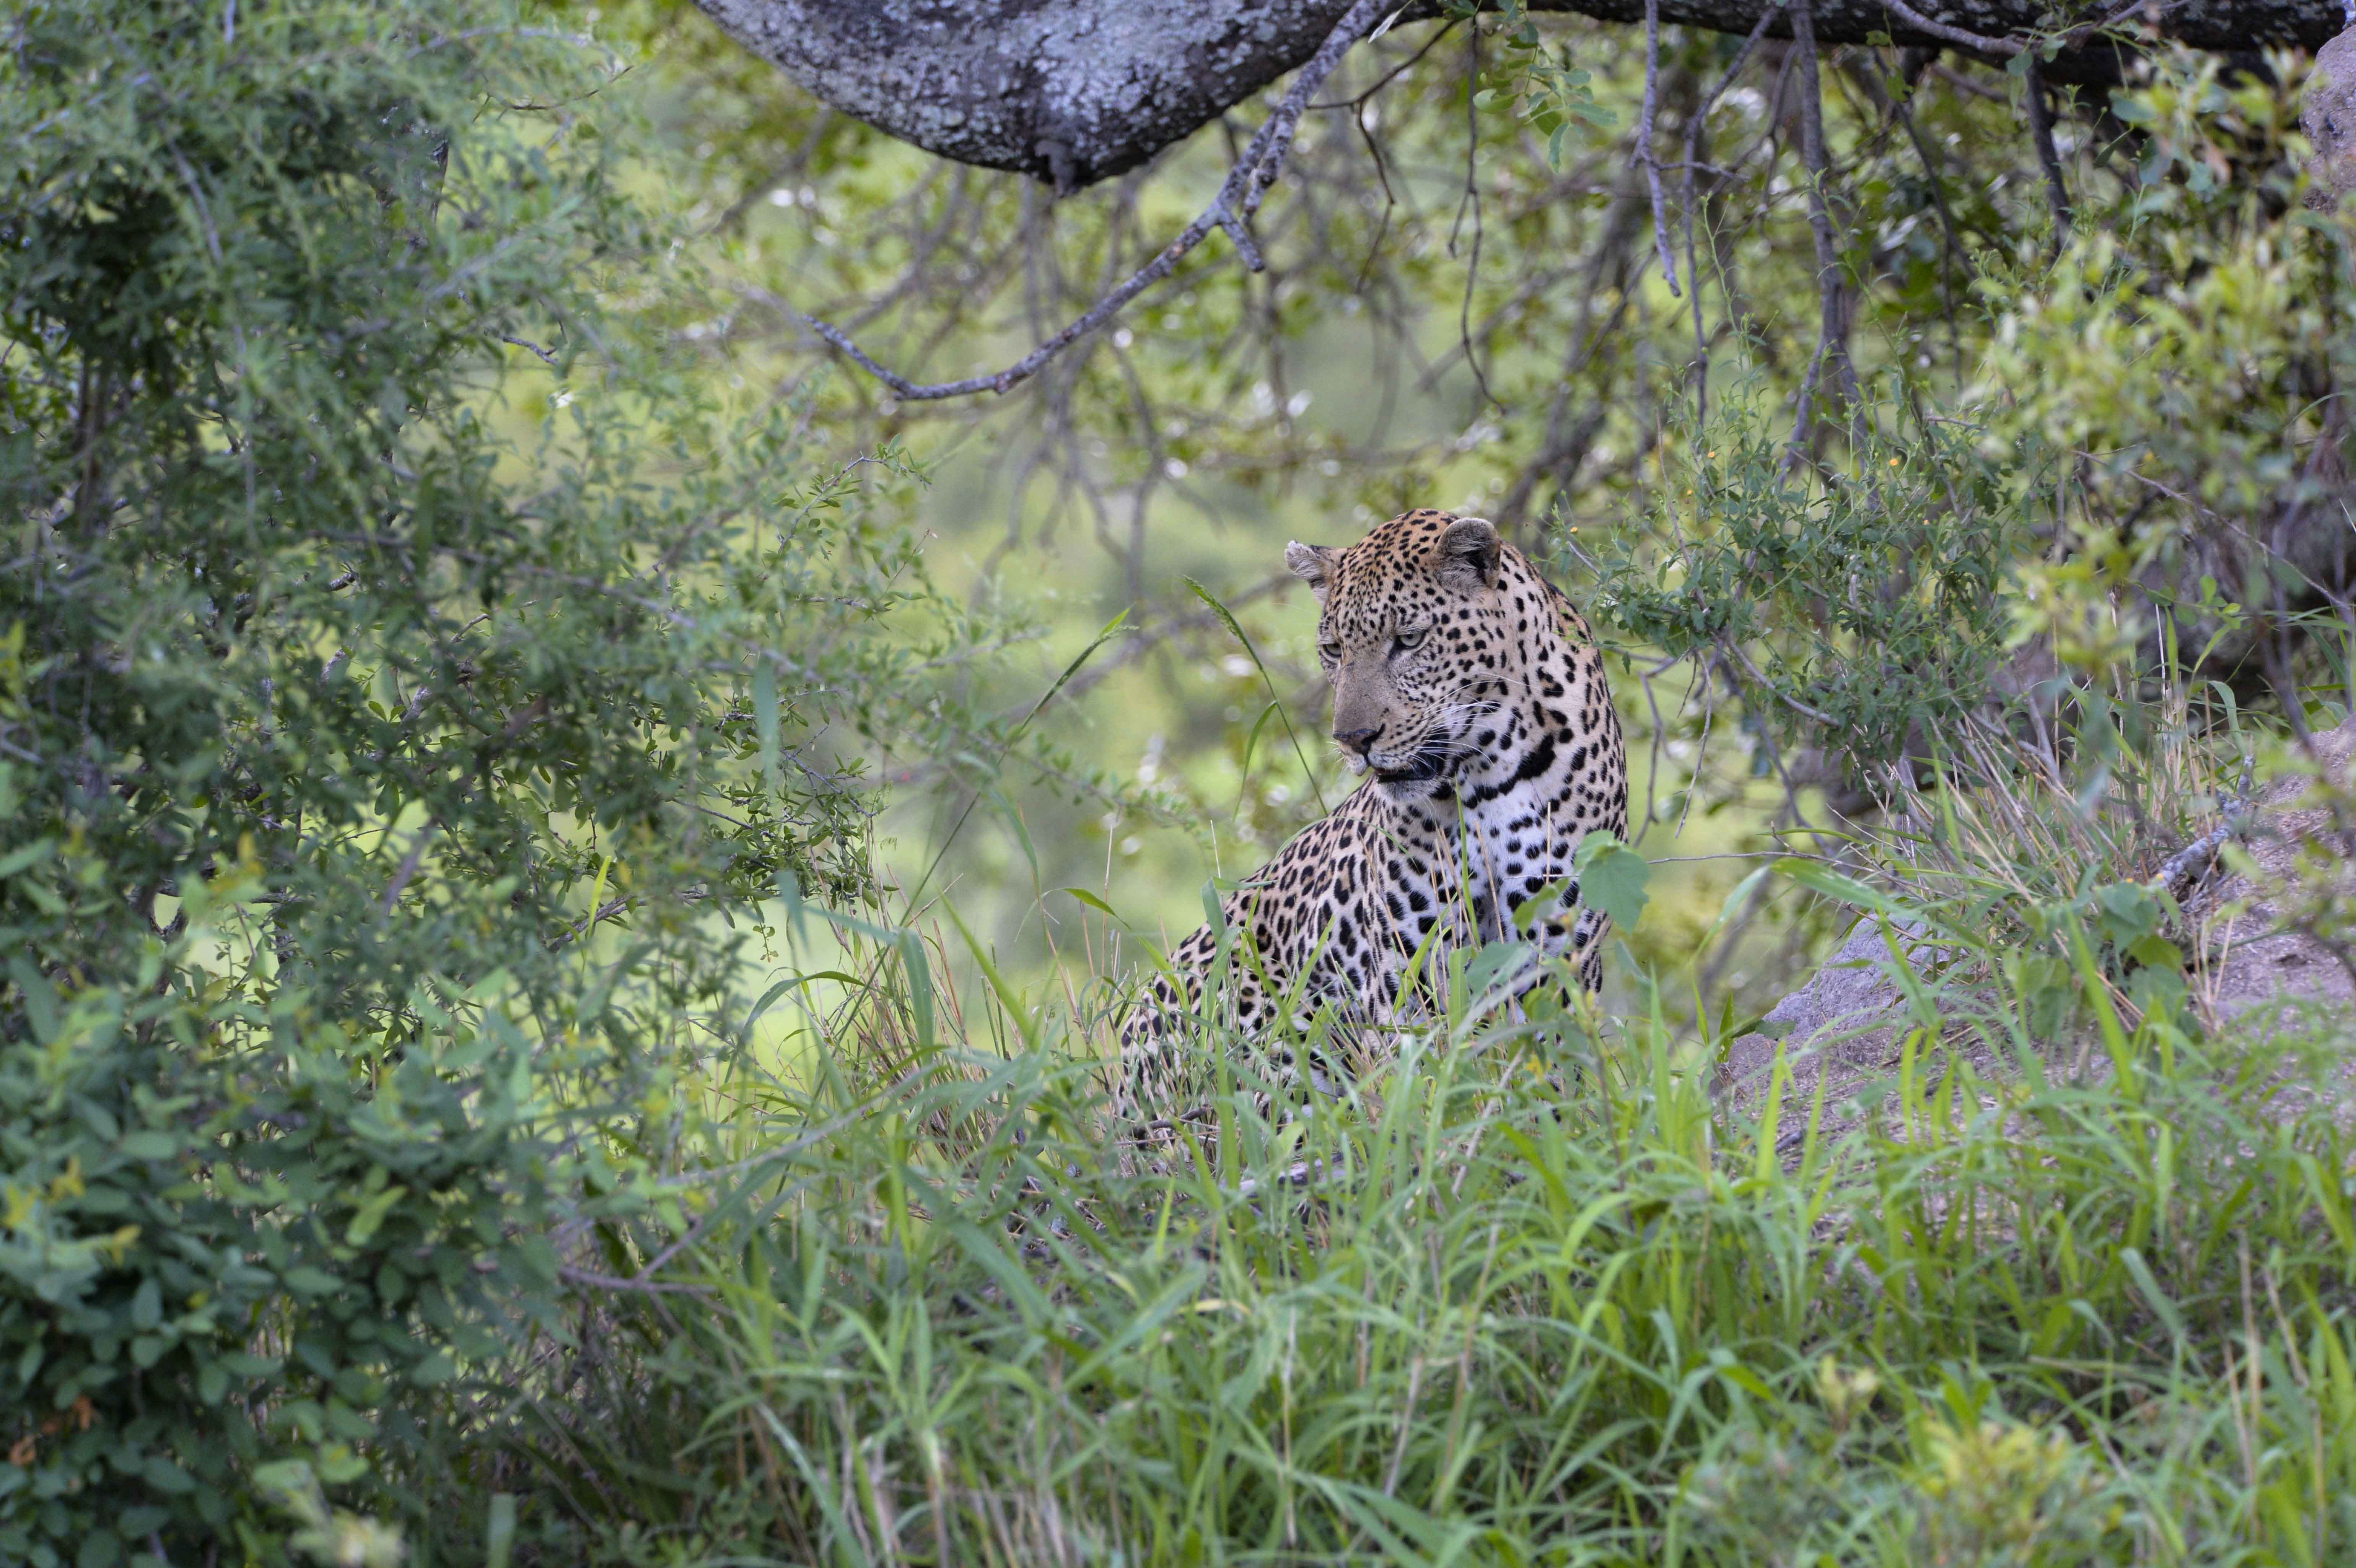 Leopard (Panthera pardus), watching; ZA ©Johannes Ratermann